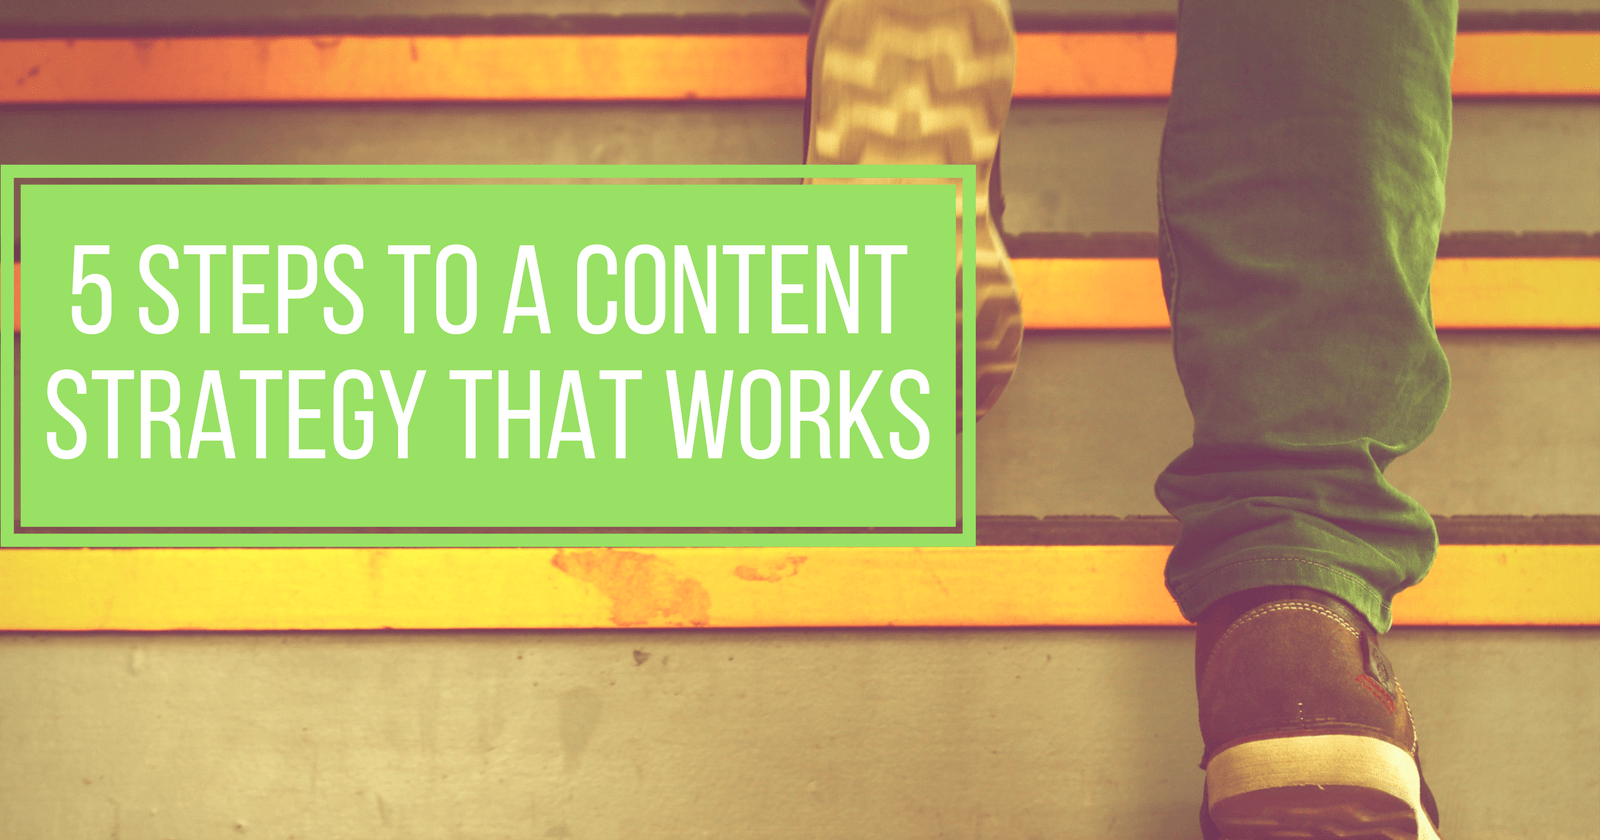 How to Build a Content Marketing Strategy That Works in 5 Steps